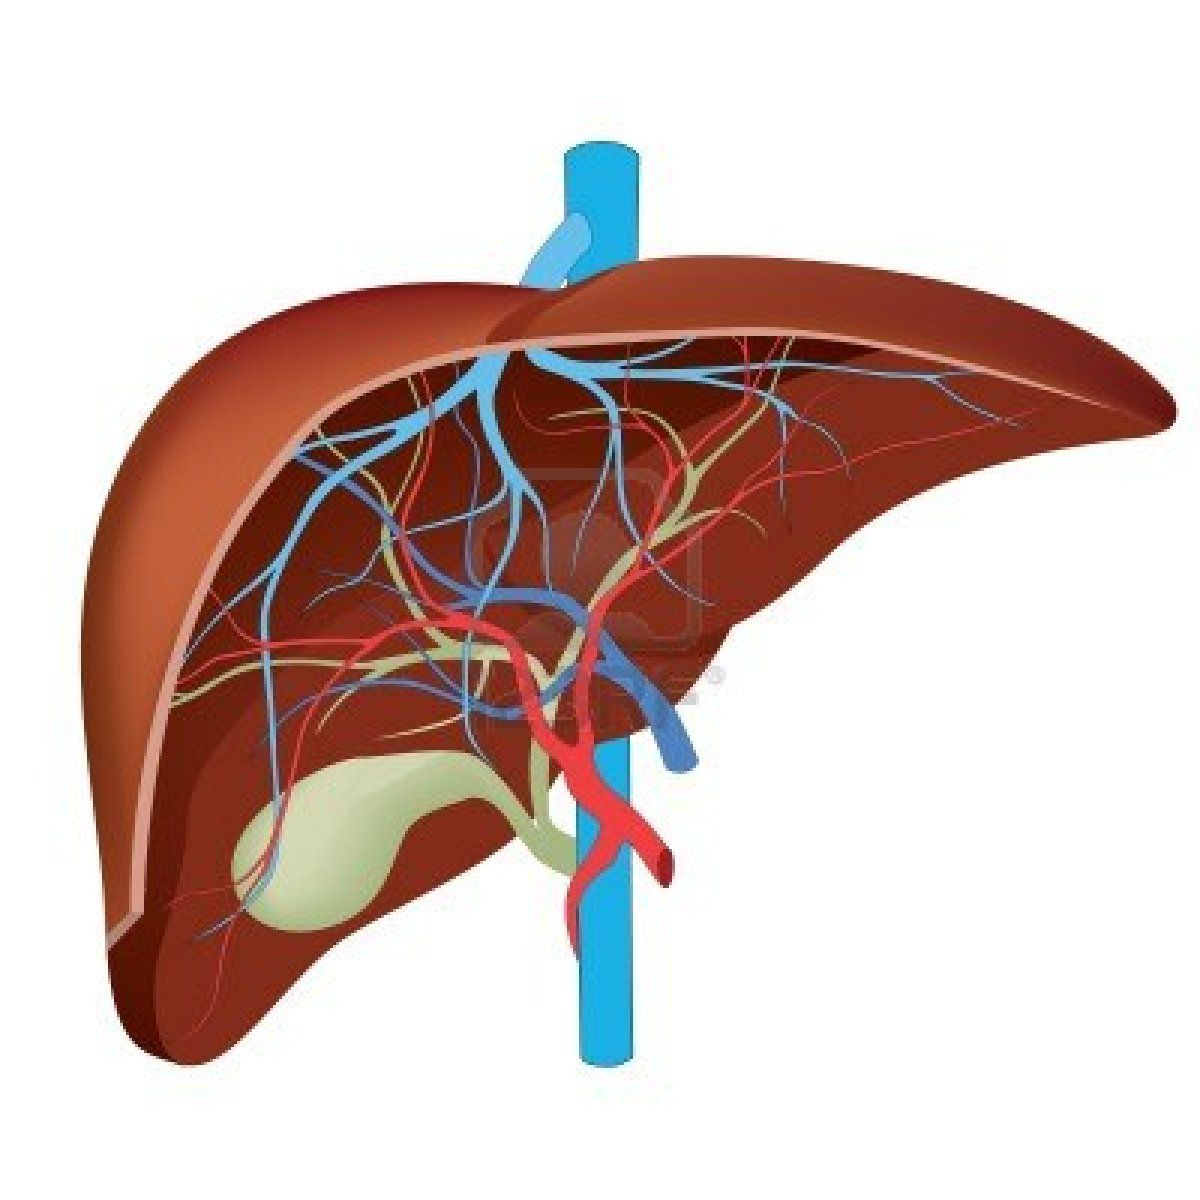 hight resolution of hepatic images liver diagram for assignment human anatomy